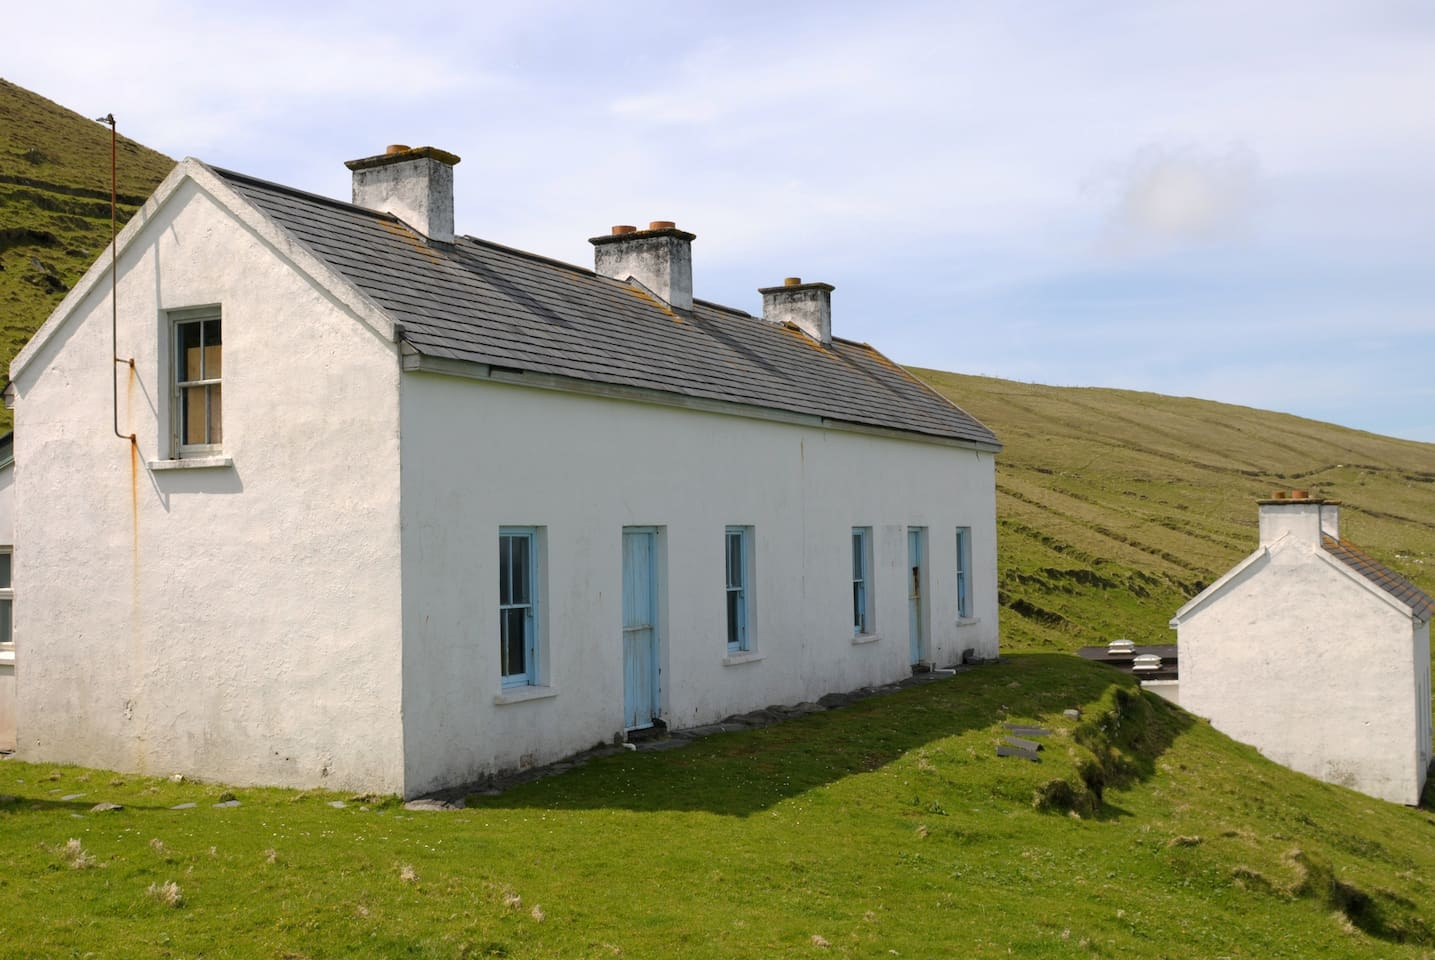 Restored houses on the Island